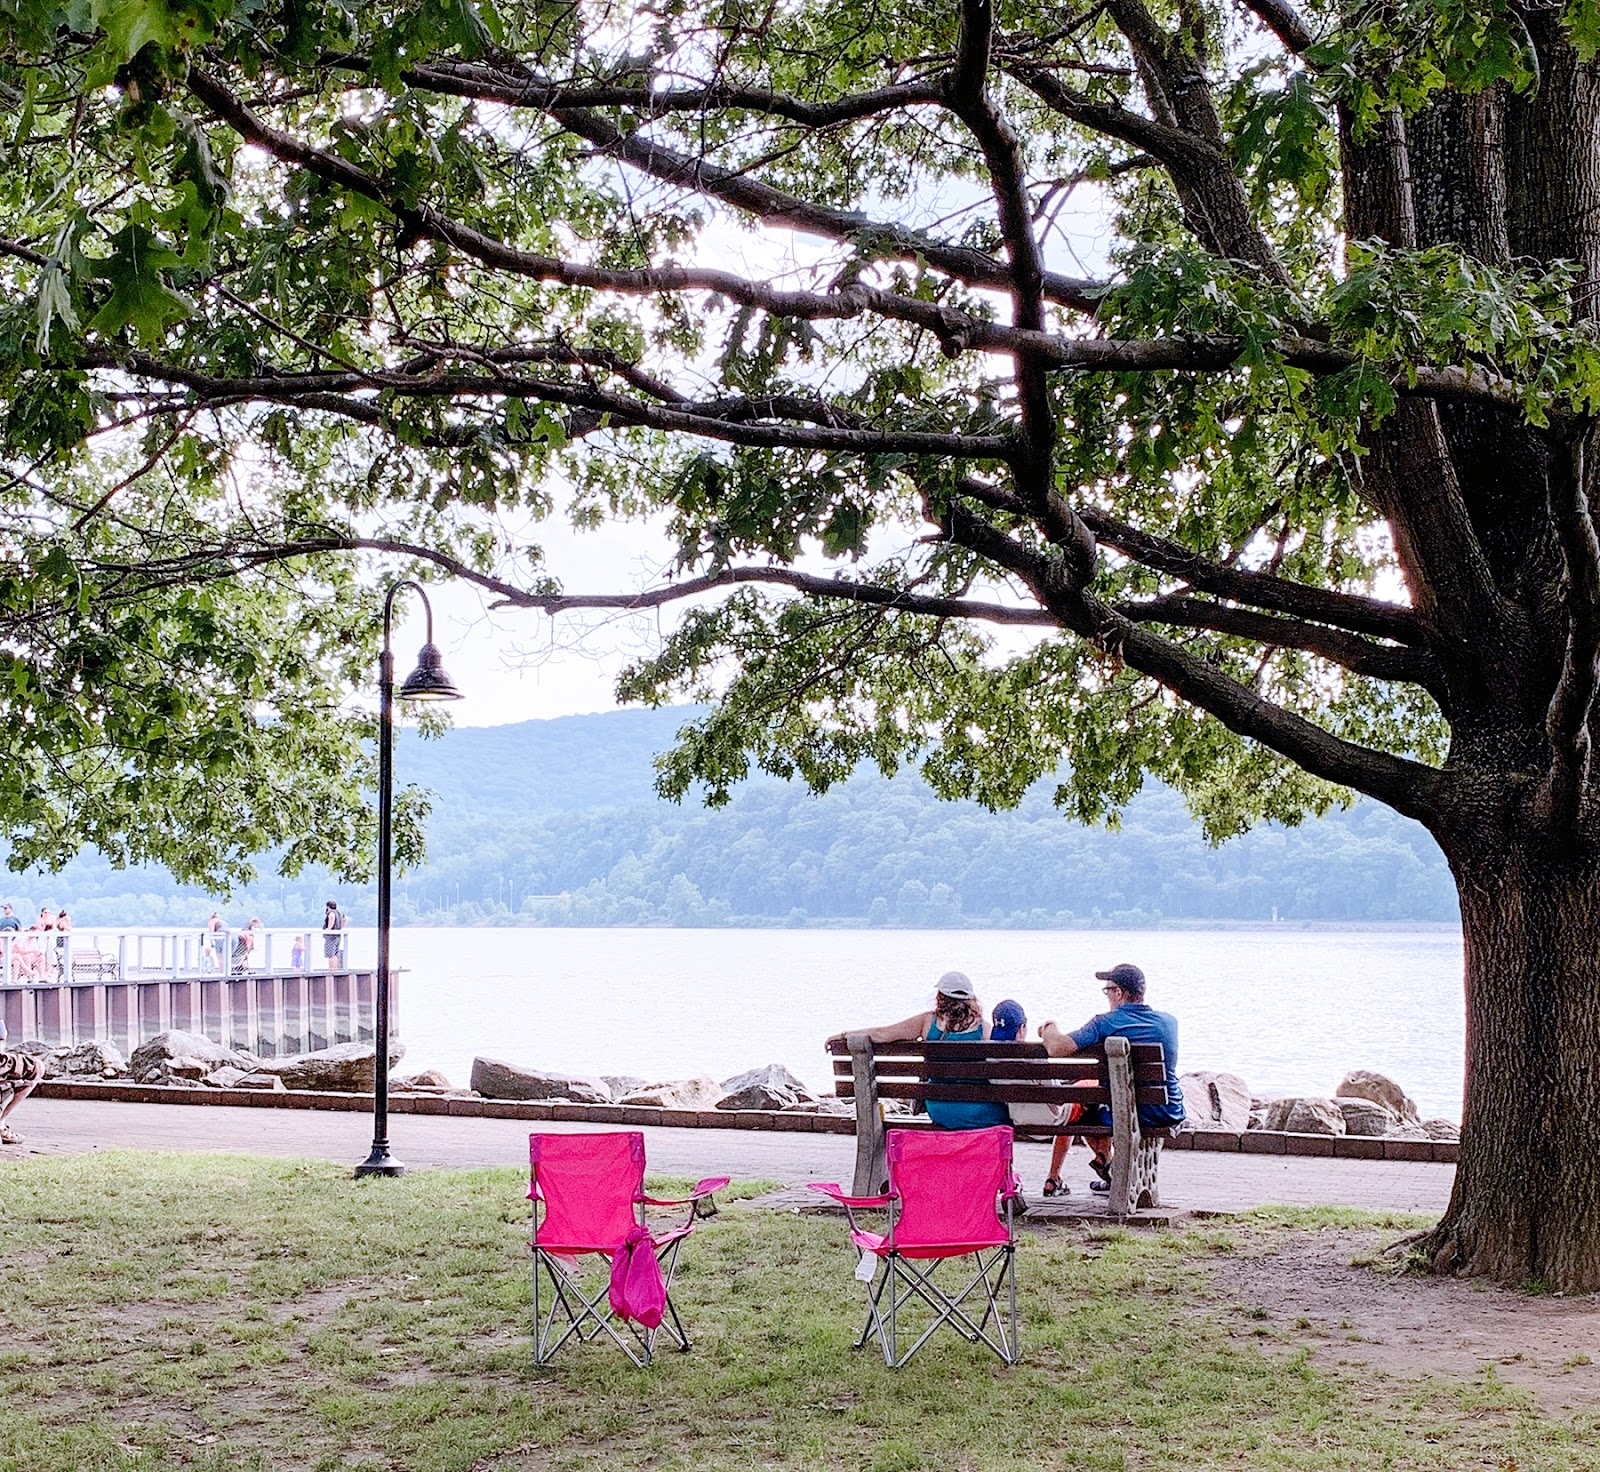 Dockside Park in Cold Spring, New York